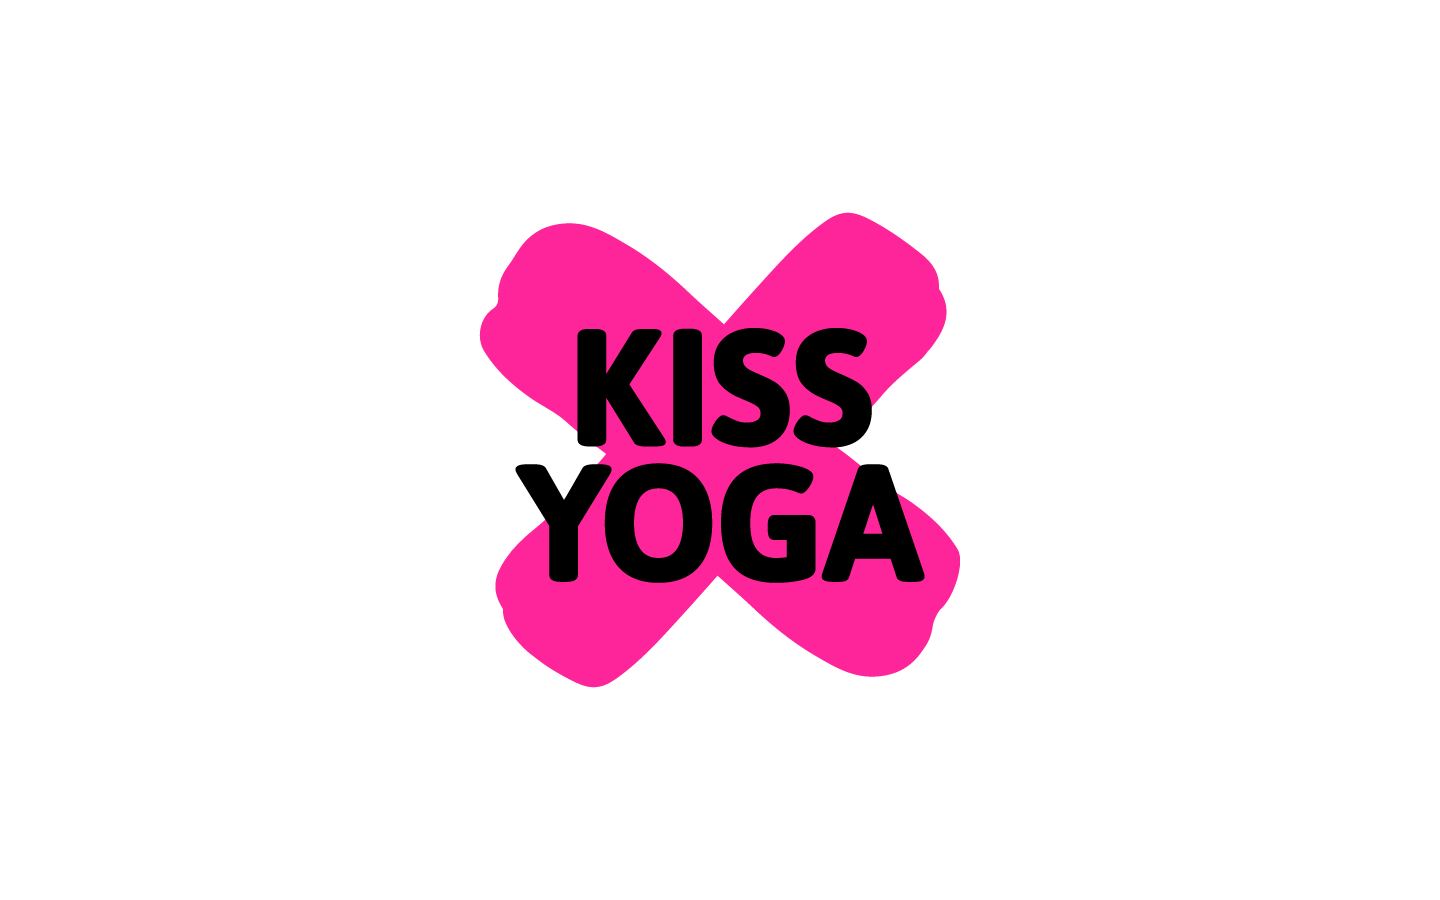 Kiss Yoga Logo - 2019